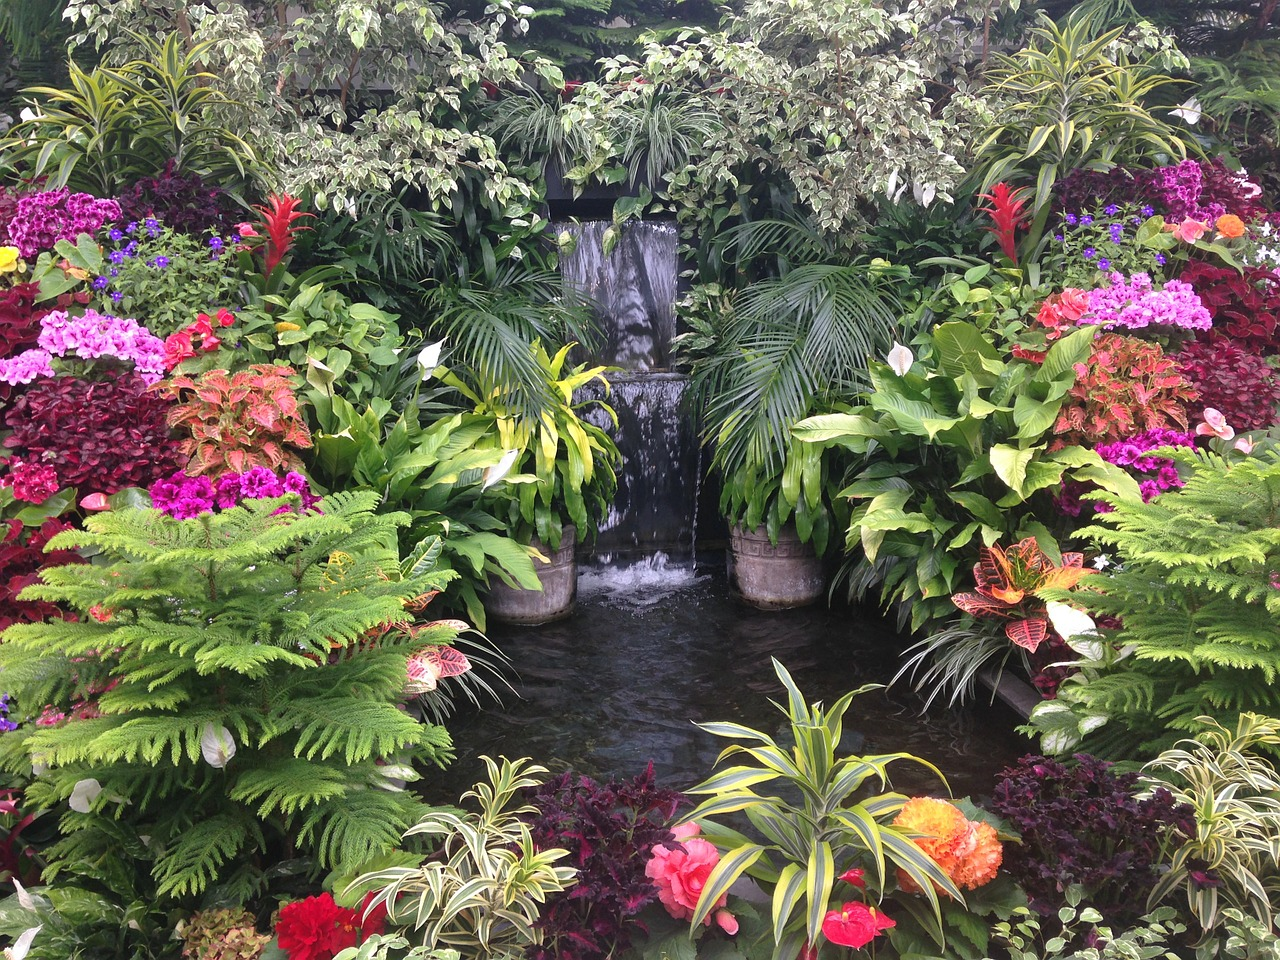 Building an Active Waterfall in Your Garden